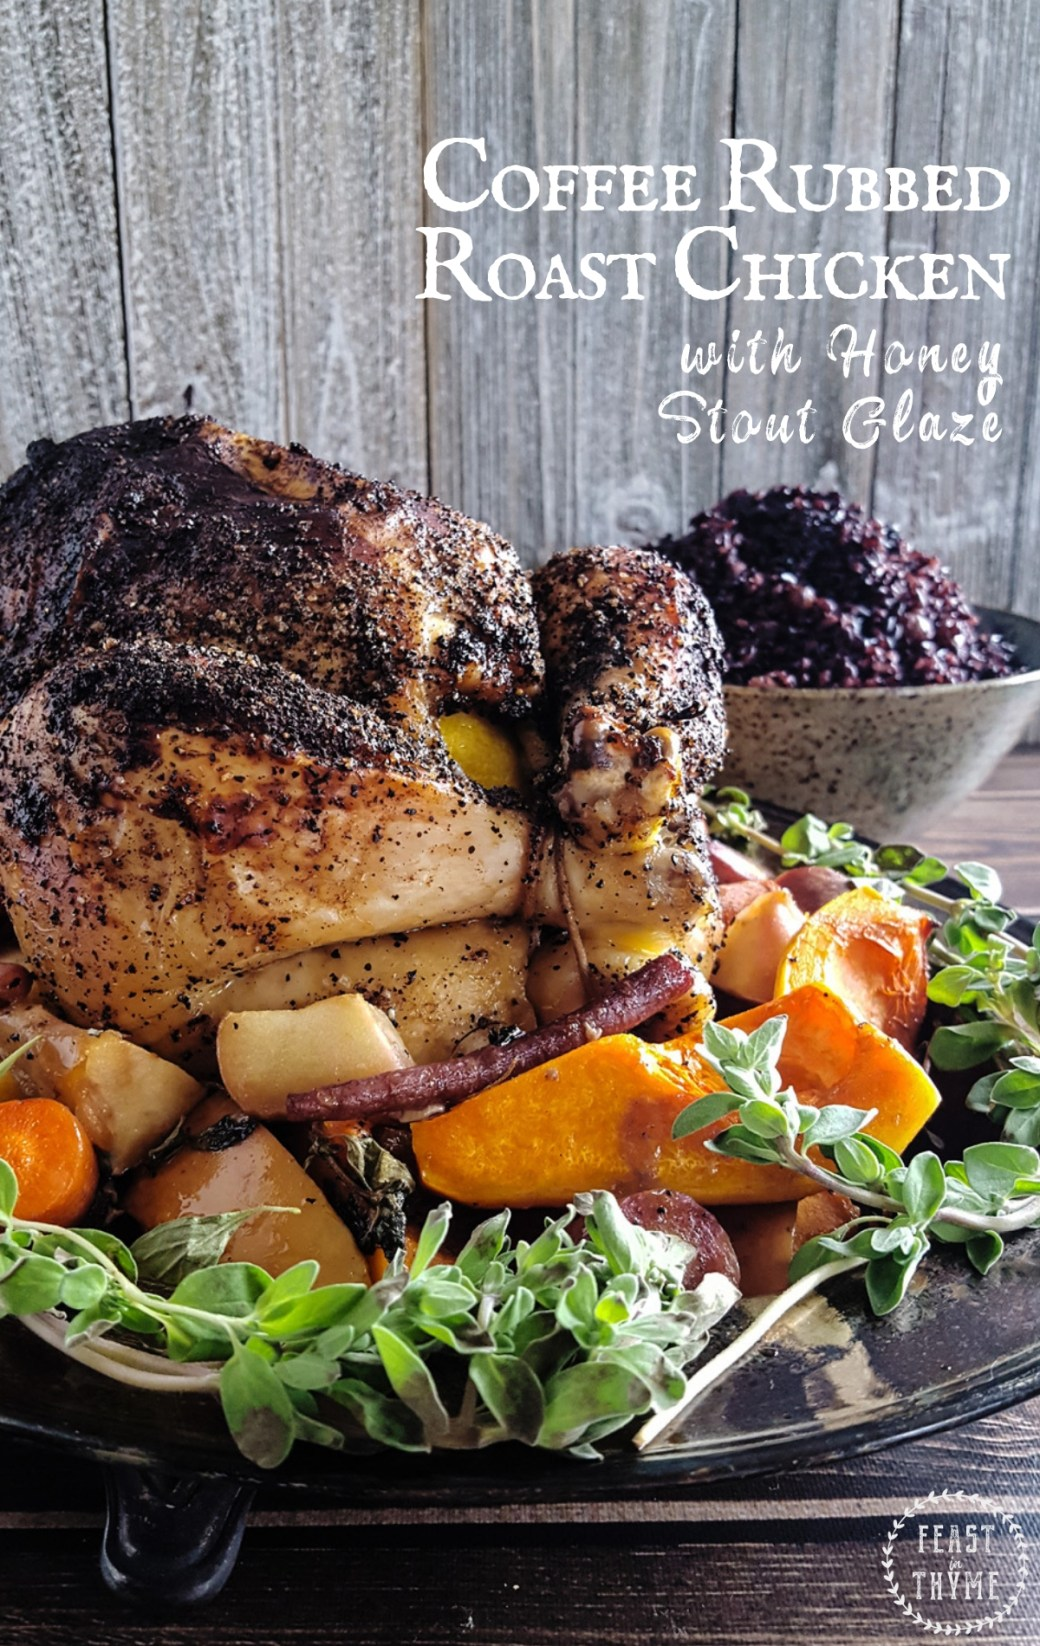 Succulent Coffee Rubbed Roast Chicken is smothered in sweet honey stout glaze and served on a bed of carrots & butternut squash. #fantasyfood #larpfood #roastchicken | FeastInThyme.com